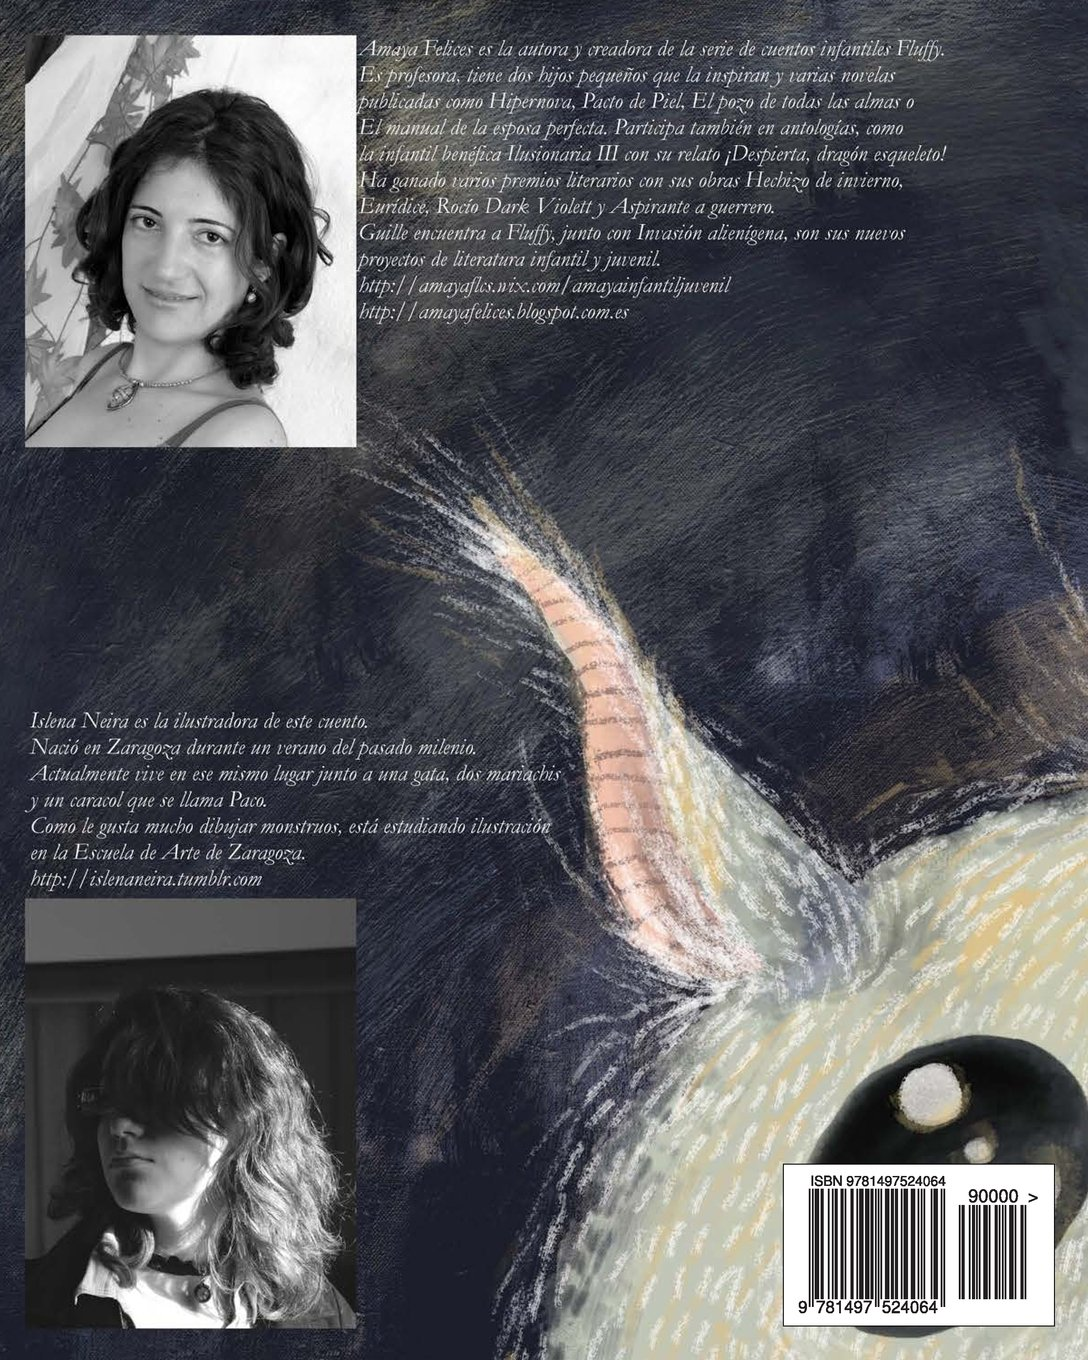 Guille encuentra a Fluffy (Volume 1) (Spanish Edition): Amaya Felices Otal, Islena Neira Lacosta, Jorge Gutierrez Sanz: 9781497524064: Amazon.com: Books